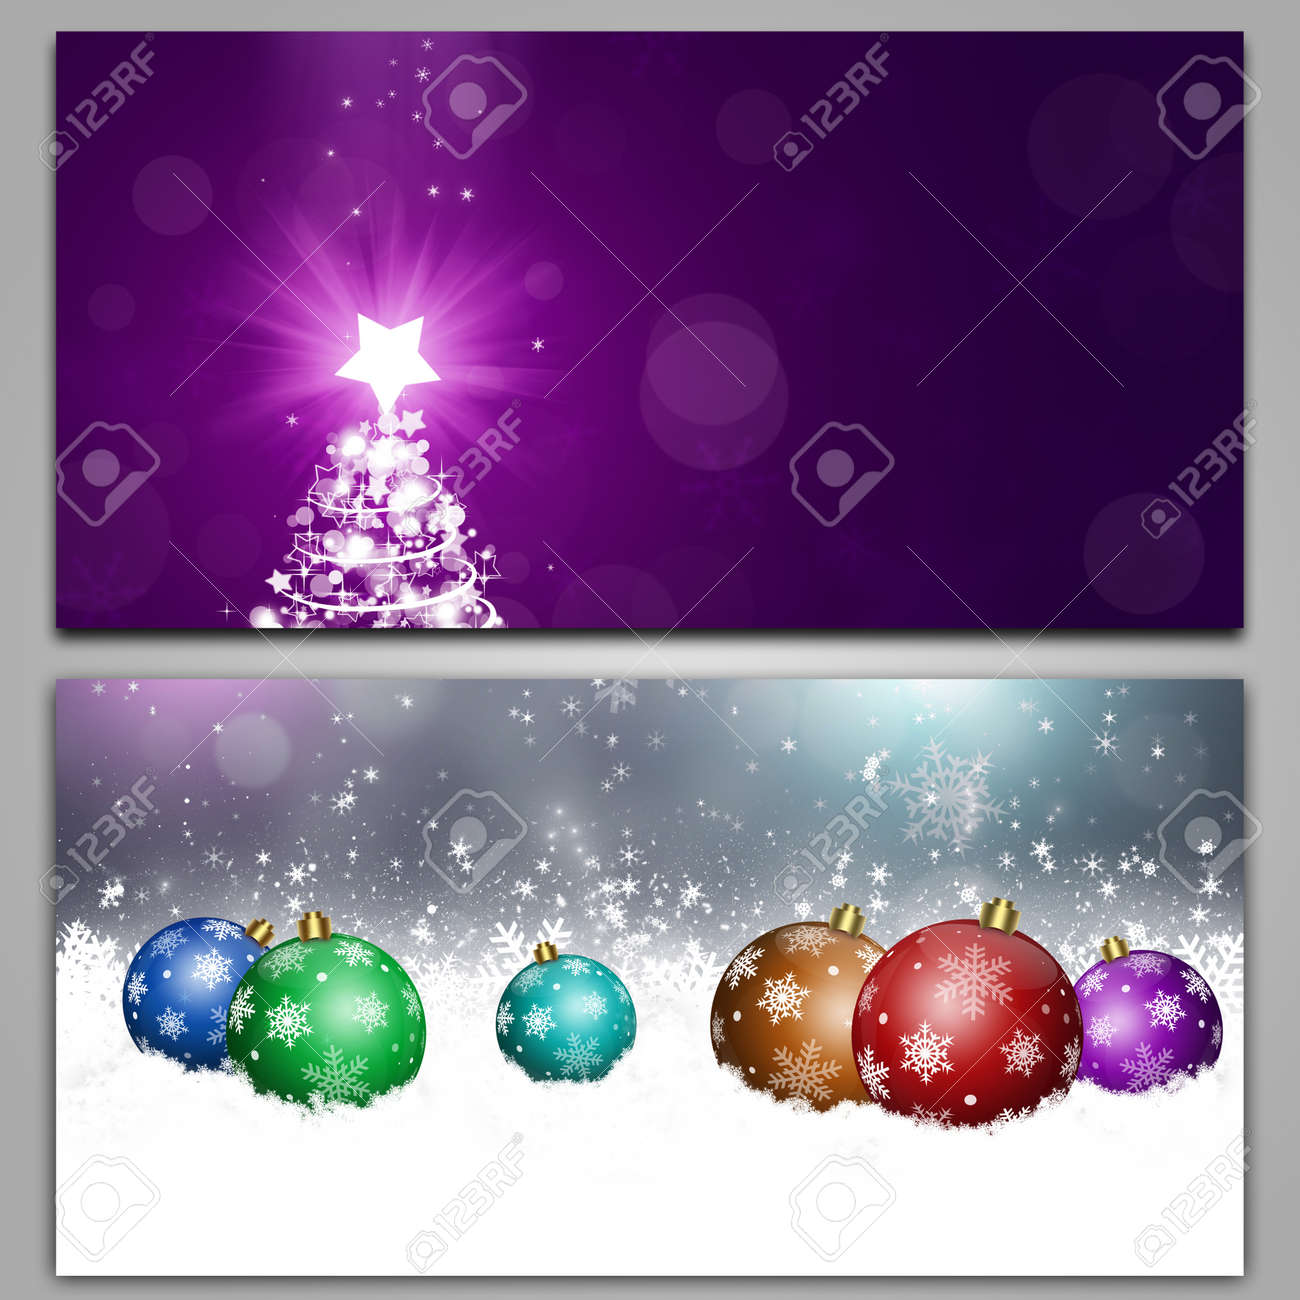 Winter Holiday Banners Ghost Recon Banners